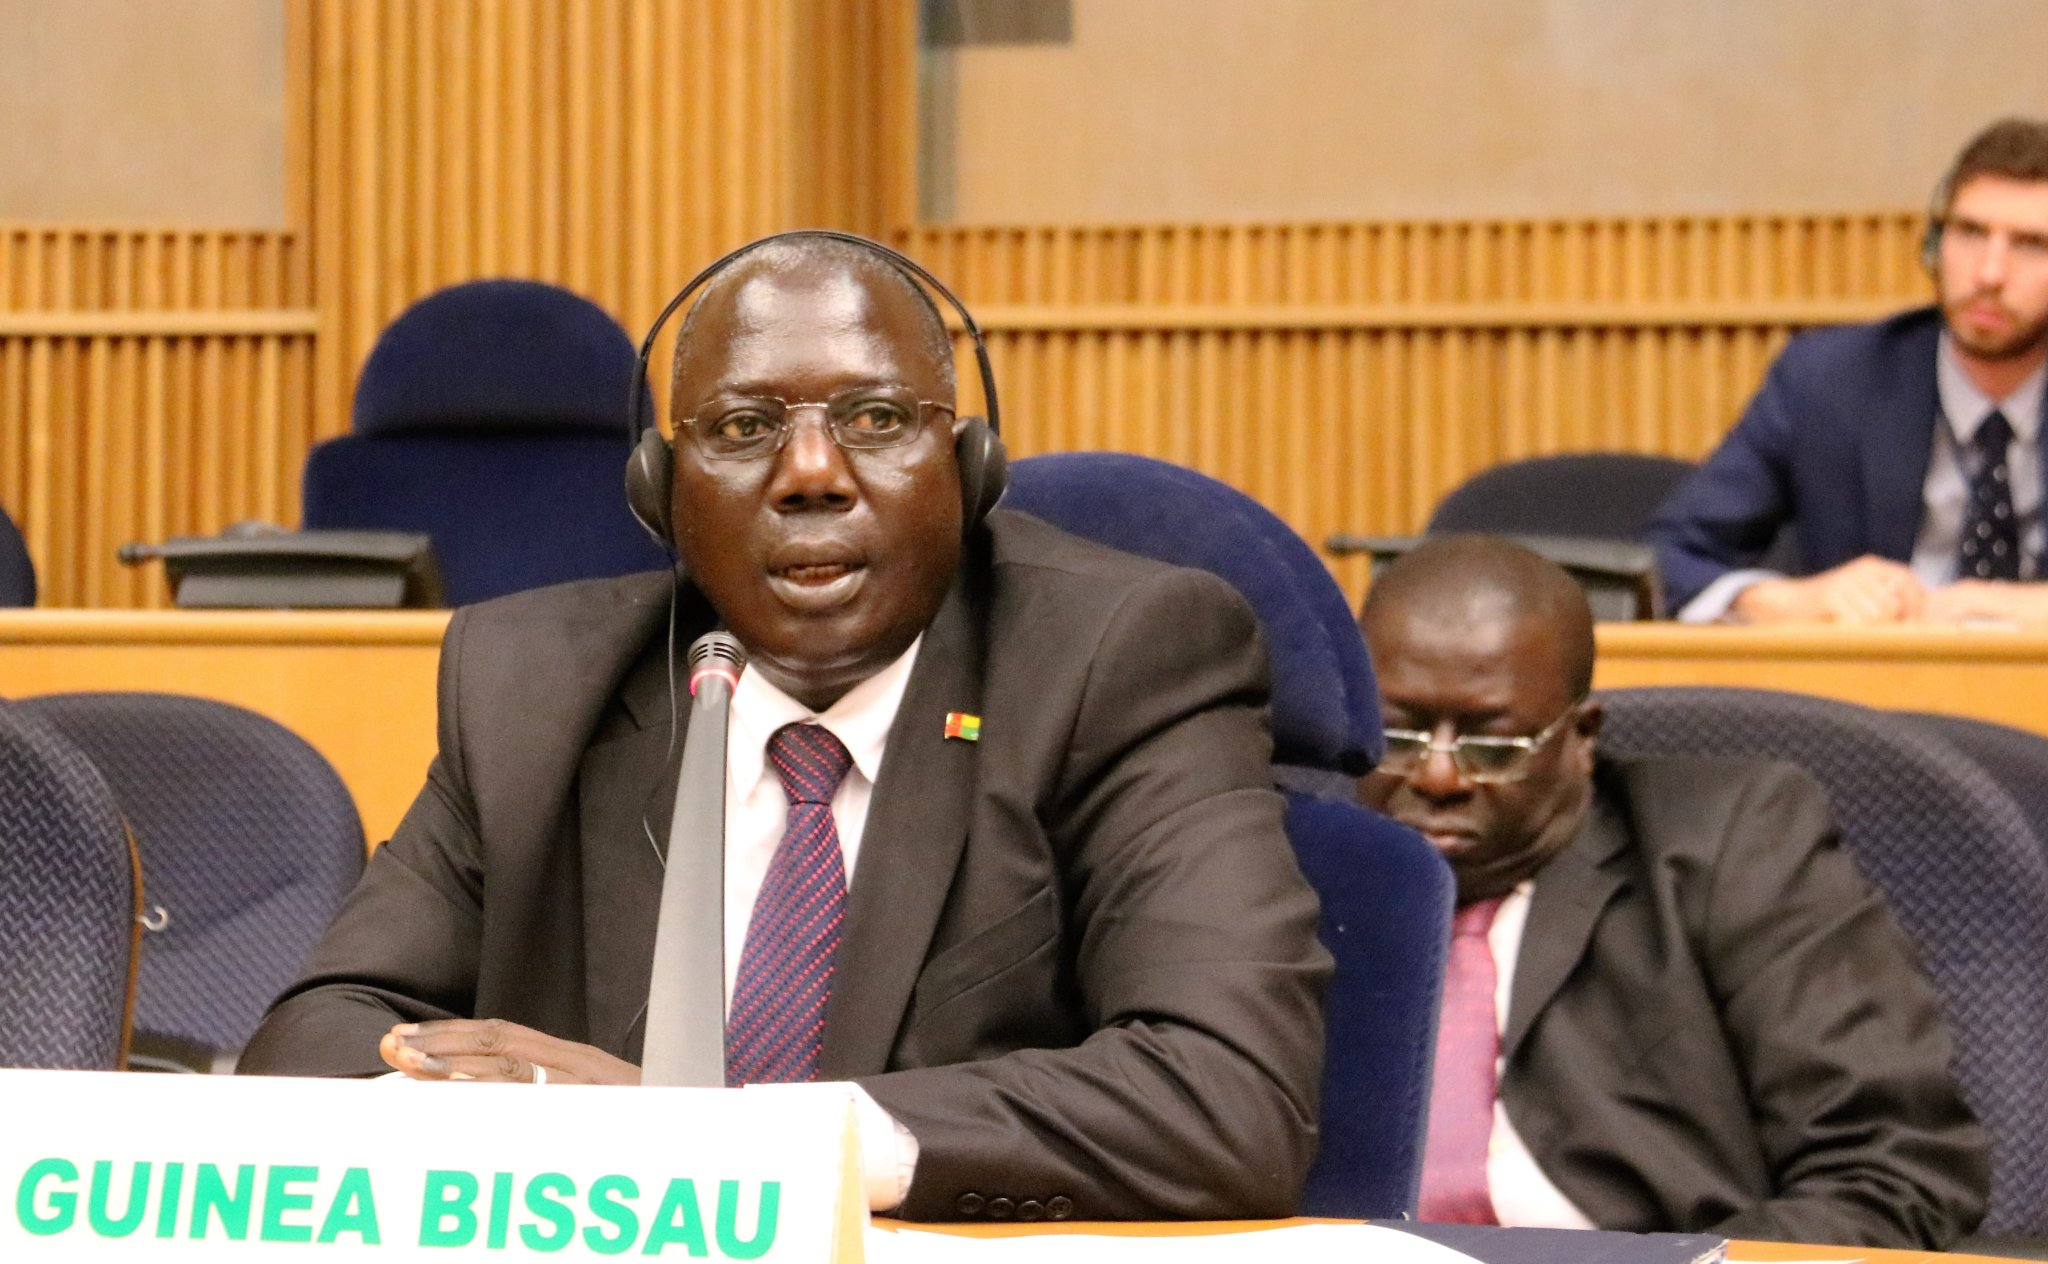 Guinea Bissau Secretary of State for International Cooperation briefs PSC on the situation in his country.